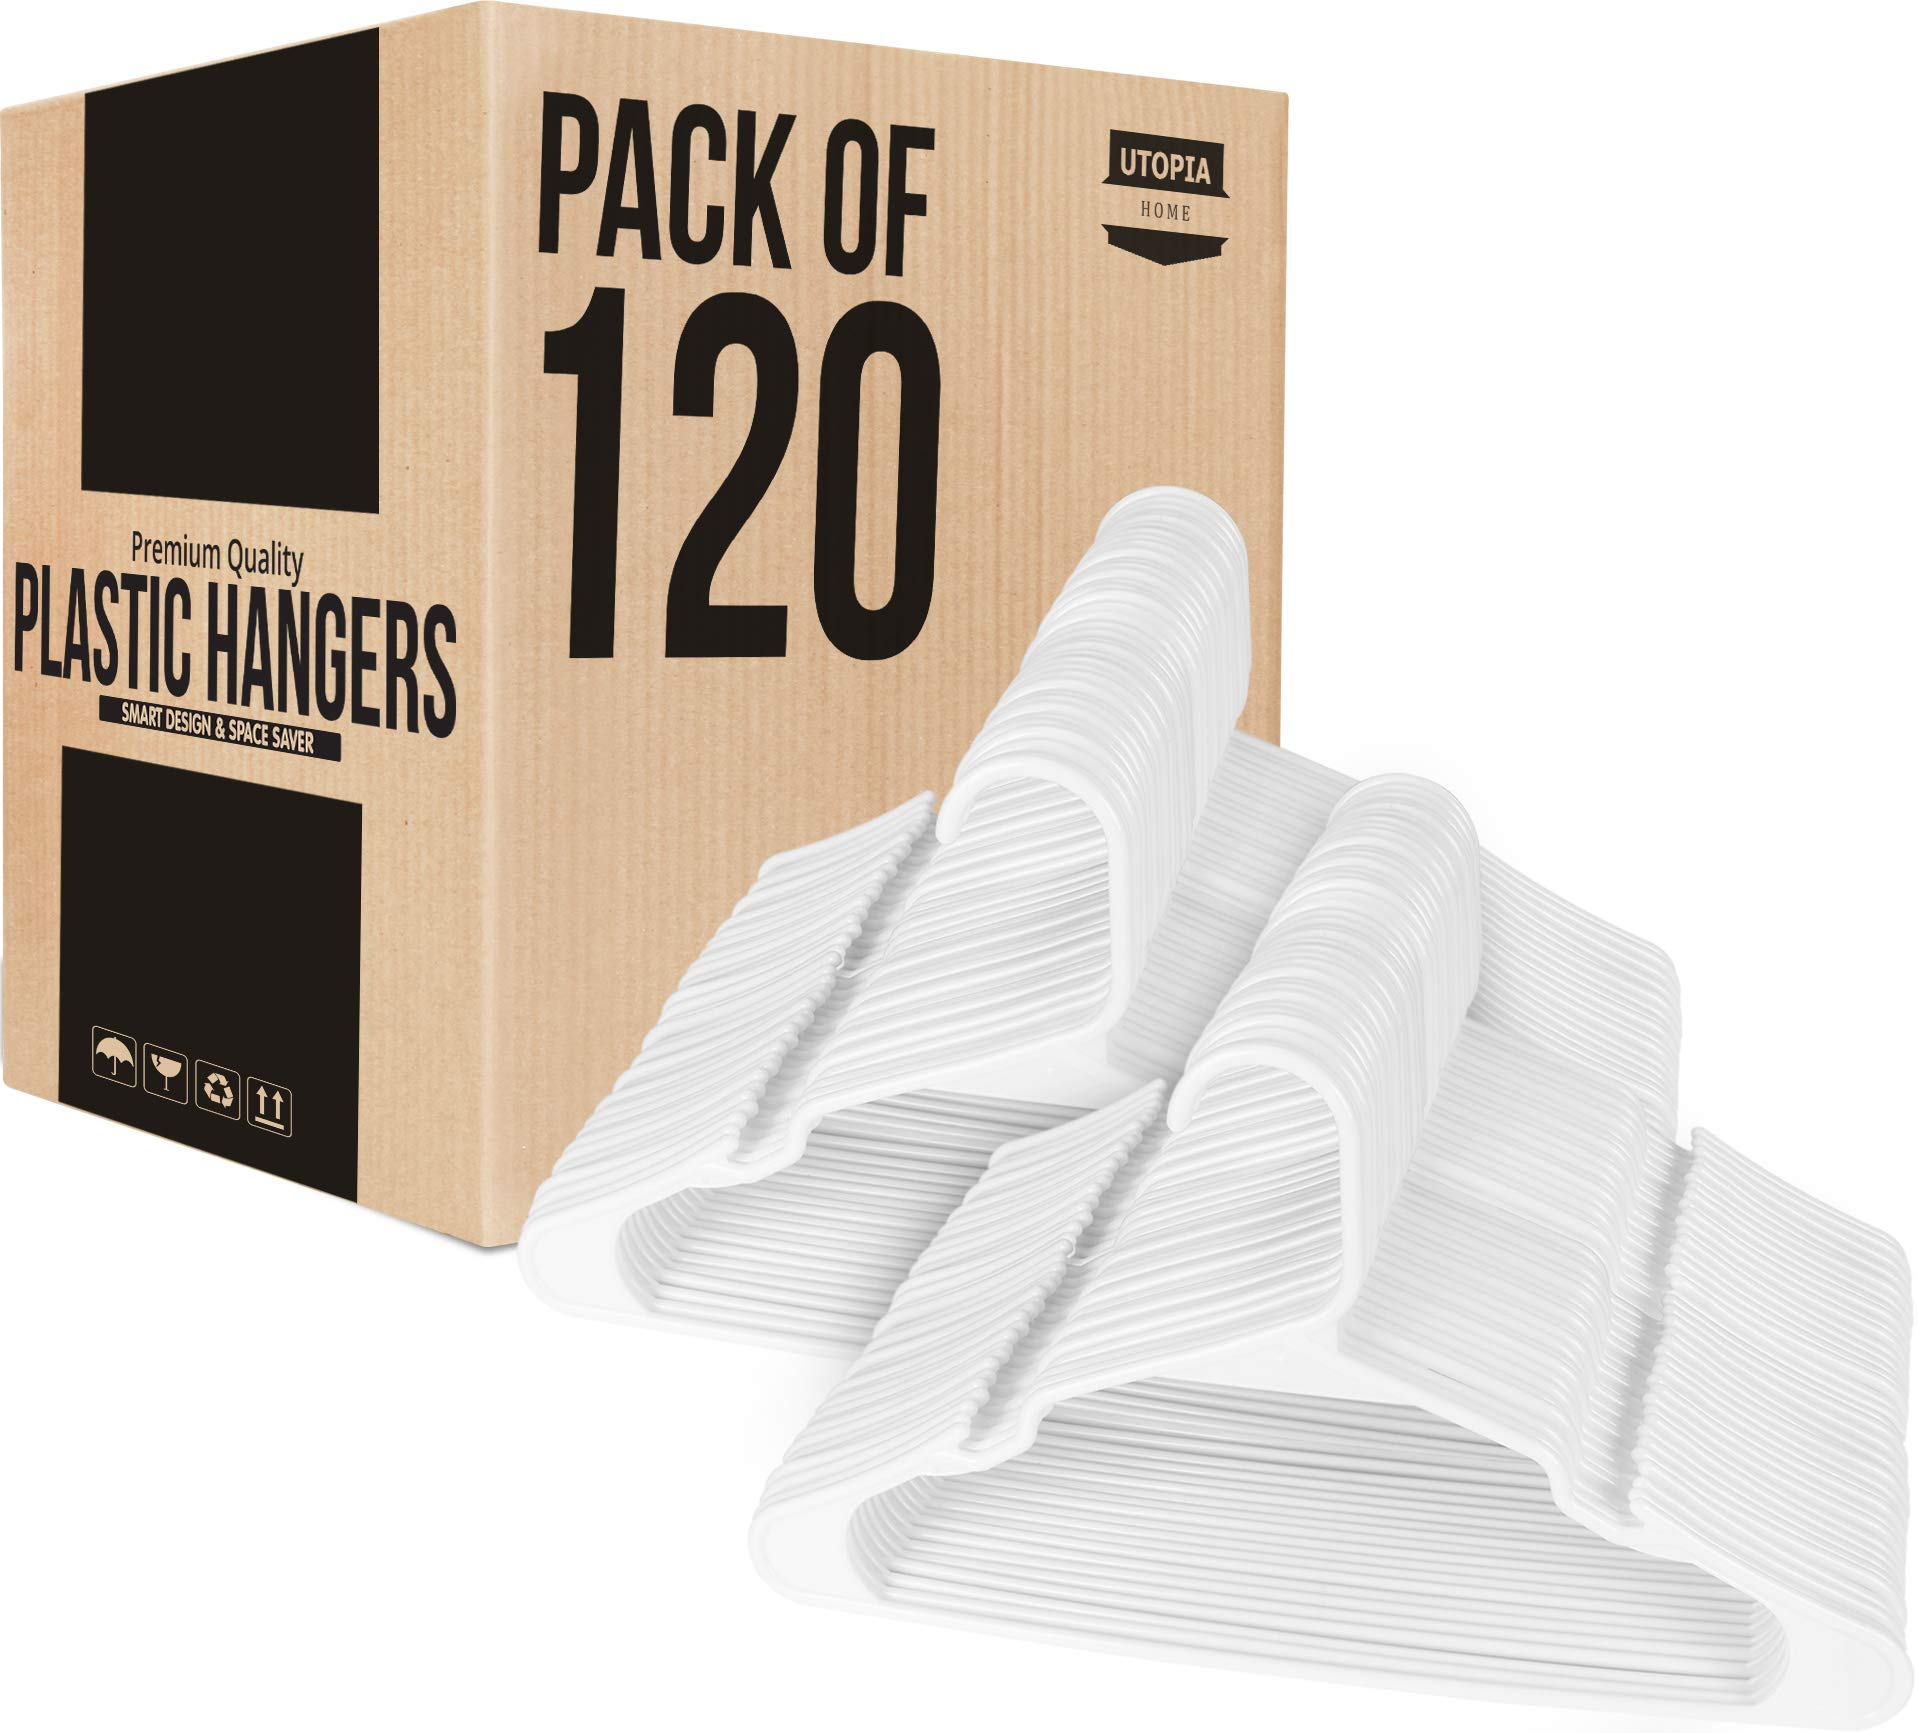 Utopia Home 120-Pack Plastic Hangers for Clothes Space Saving Notched Hangers - White